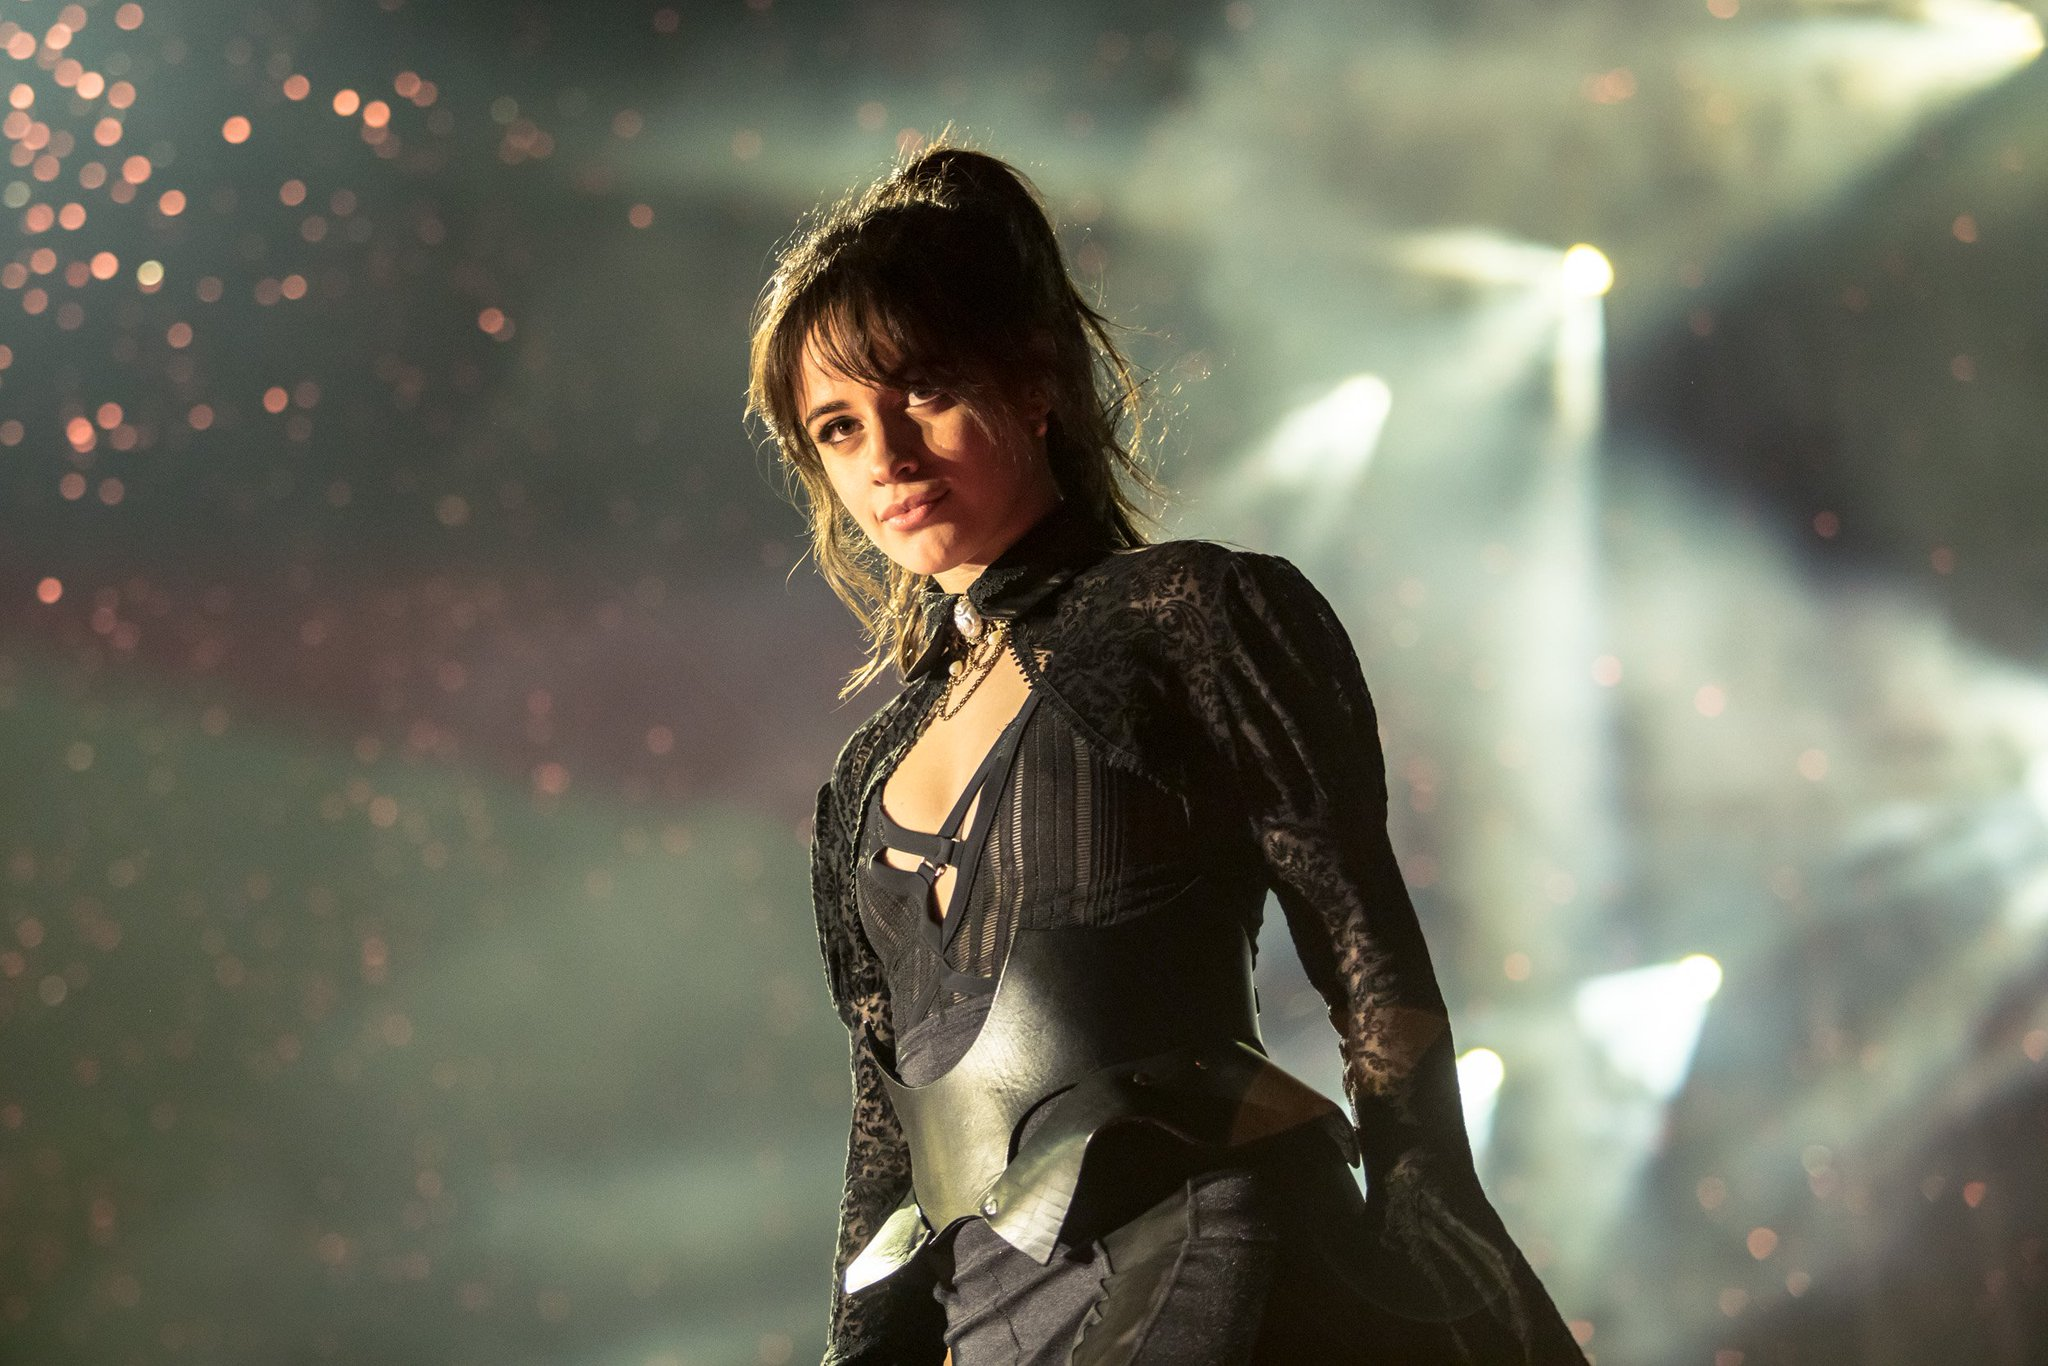 Camila Cabello performing at the BBMAs (pic courtesy of DCP Social/DCP Digital) https://t.co/g15A9GnTcJ